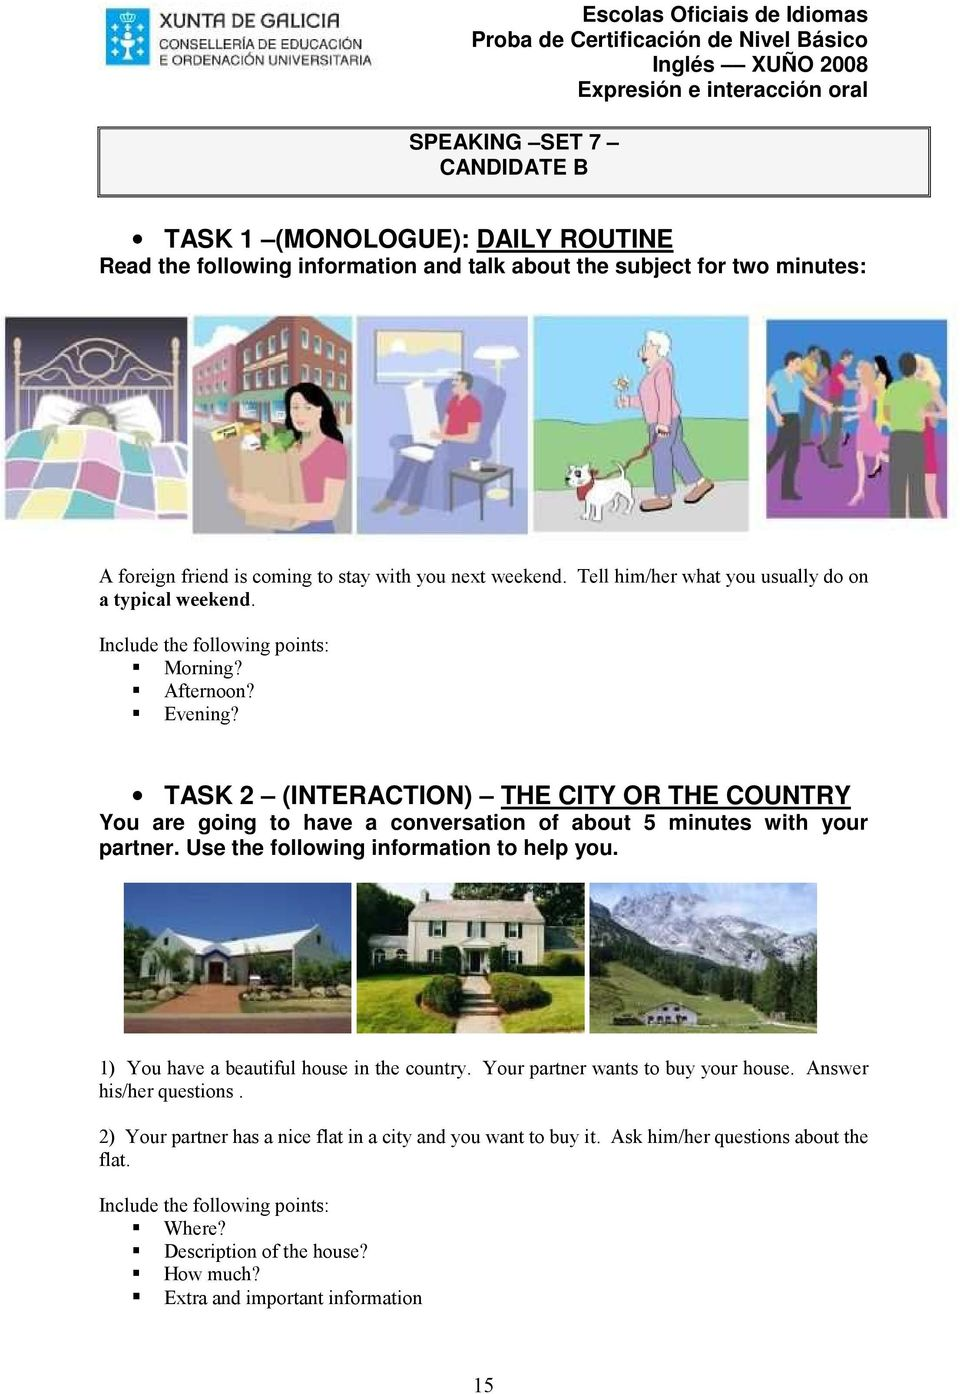 TASK 2 (INTERACTION) THE CITY OR THE COUNTRY 1) You have a beautiful house in the country. Your partner wants to buy your house.